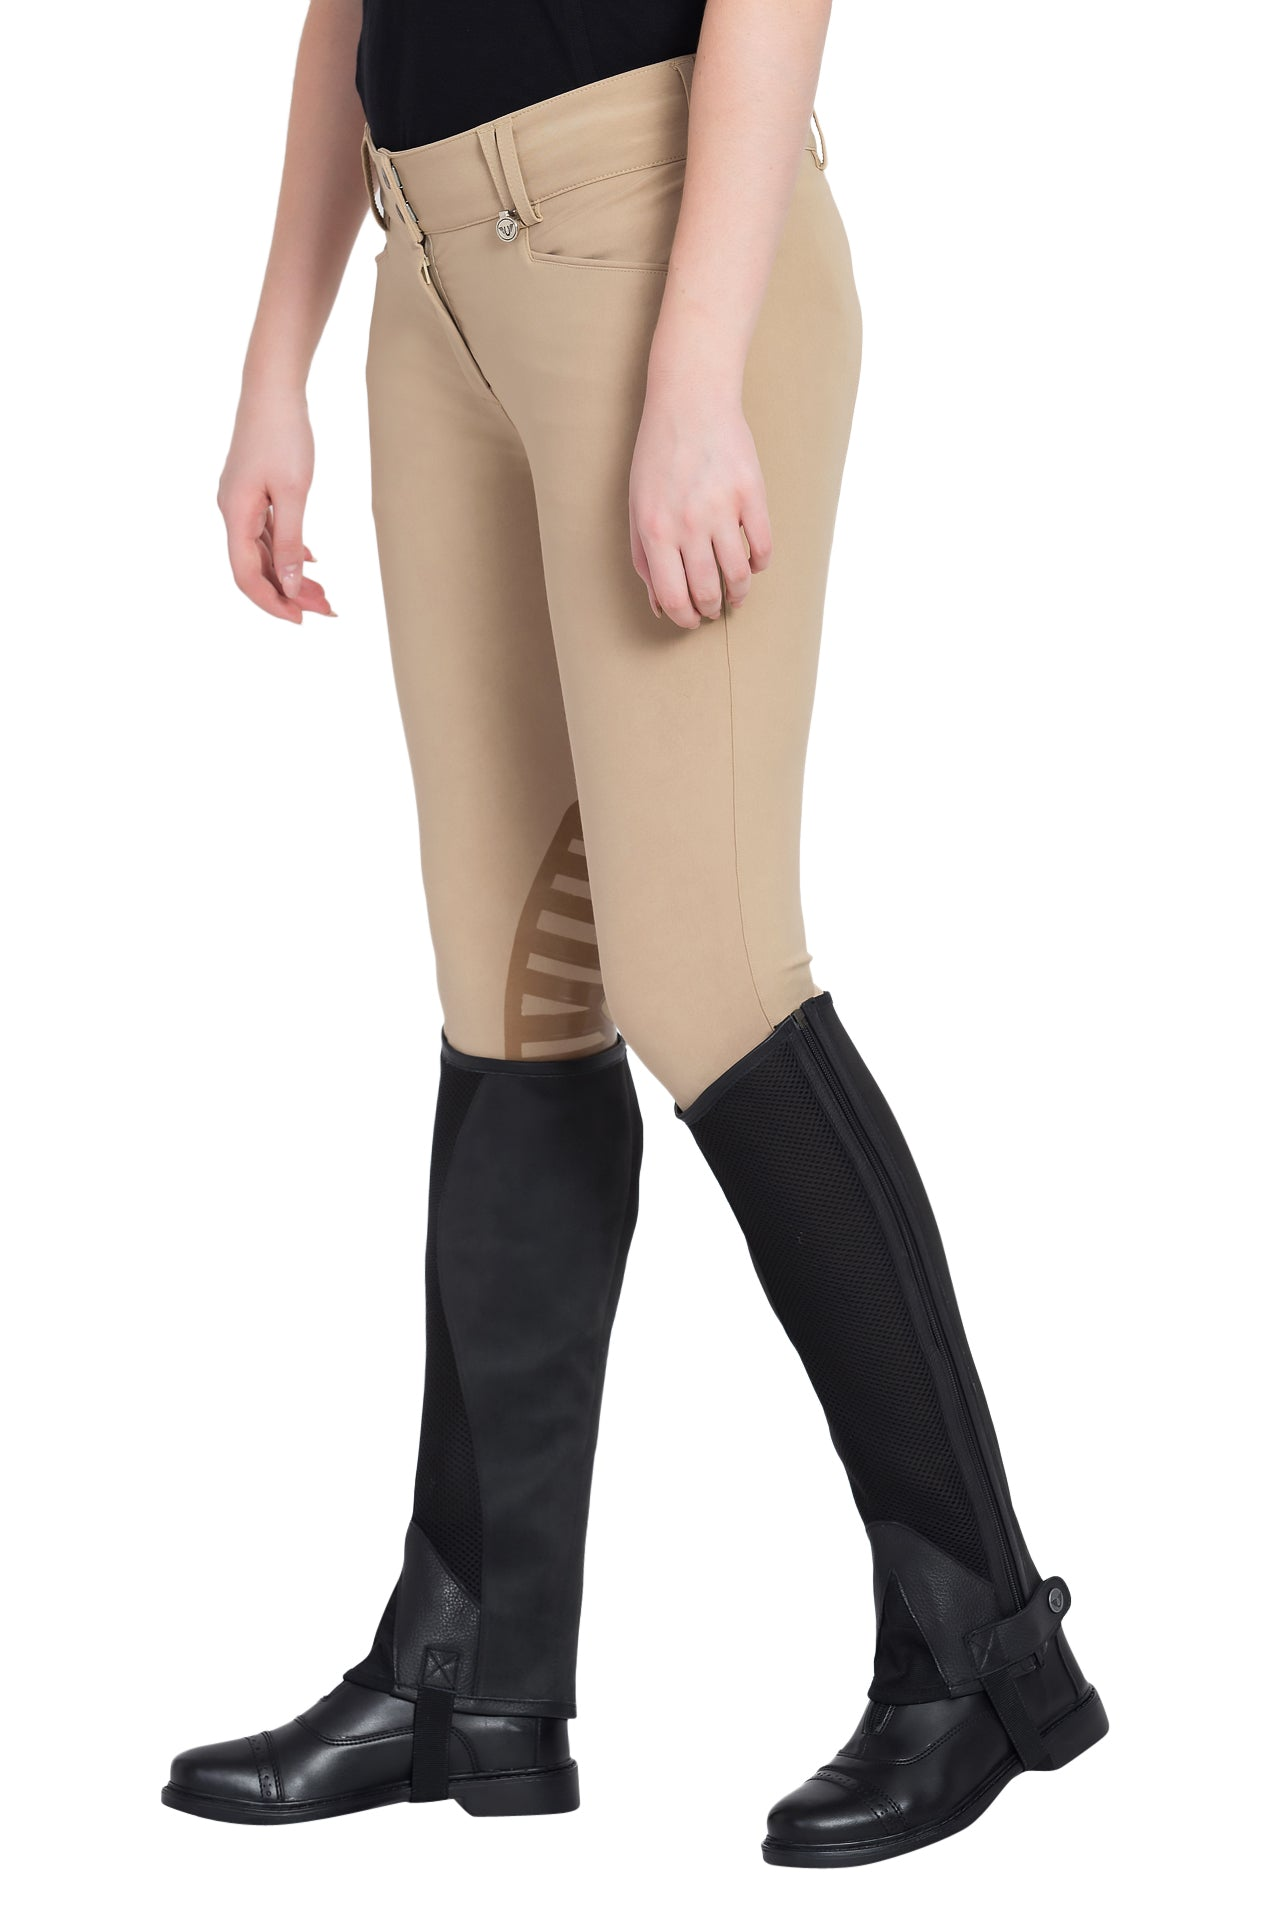 Tuffrider Air Mesh Washable Half Chaps - TuffRider - Breeches.com